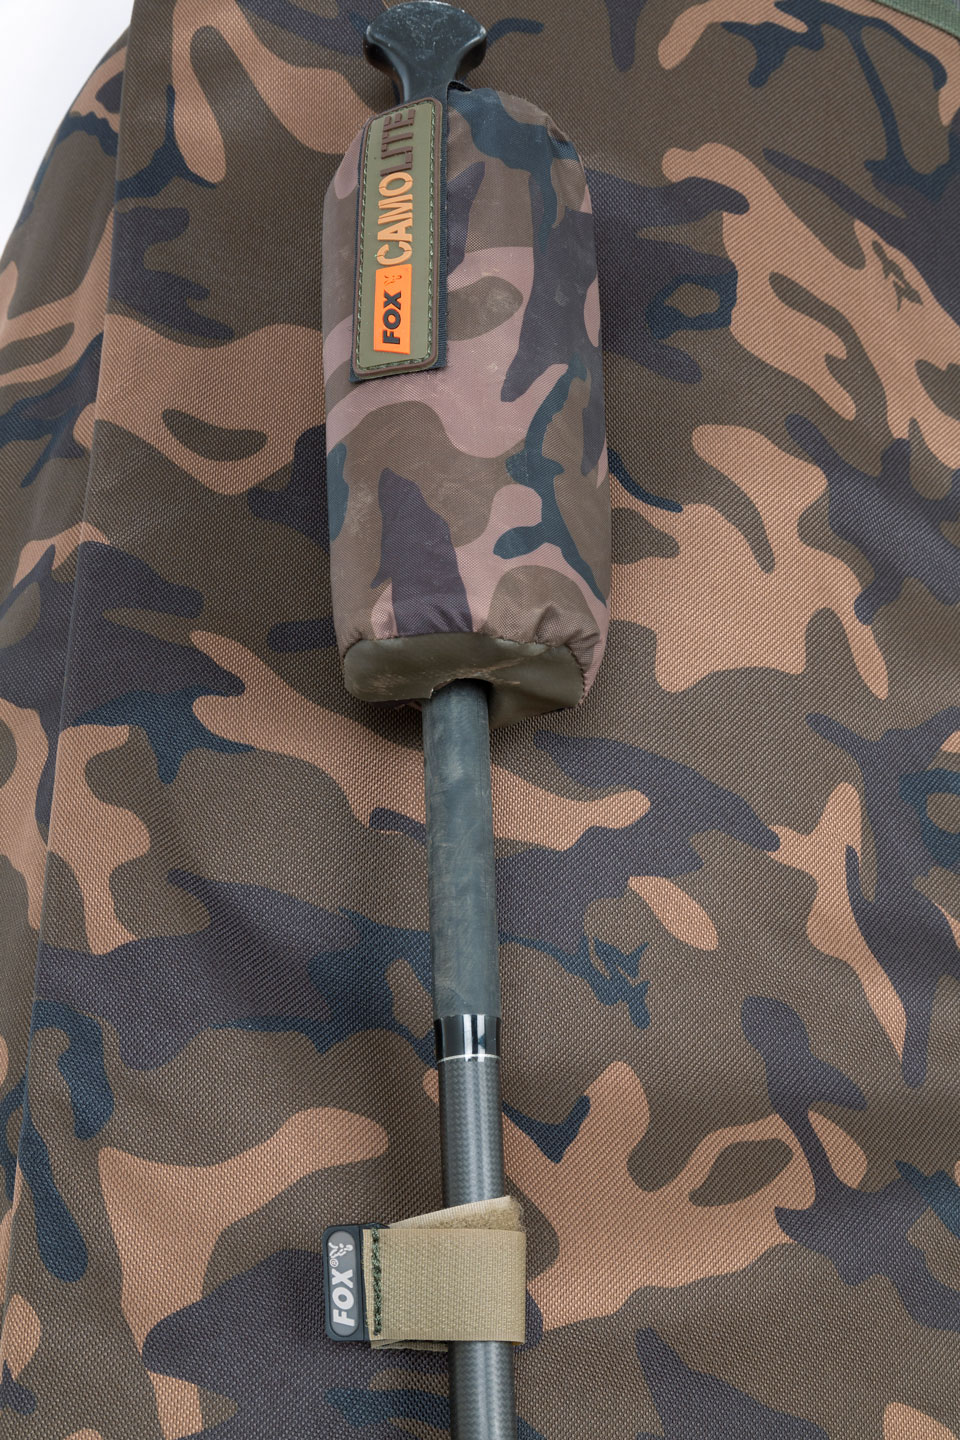 camolite-13ft-6-rod-holdall_cu01gif